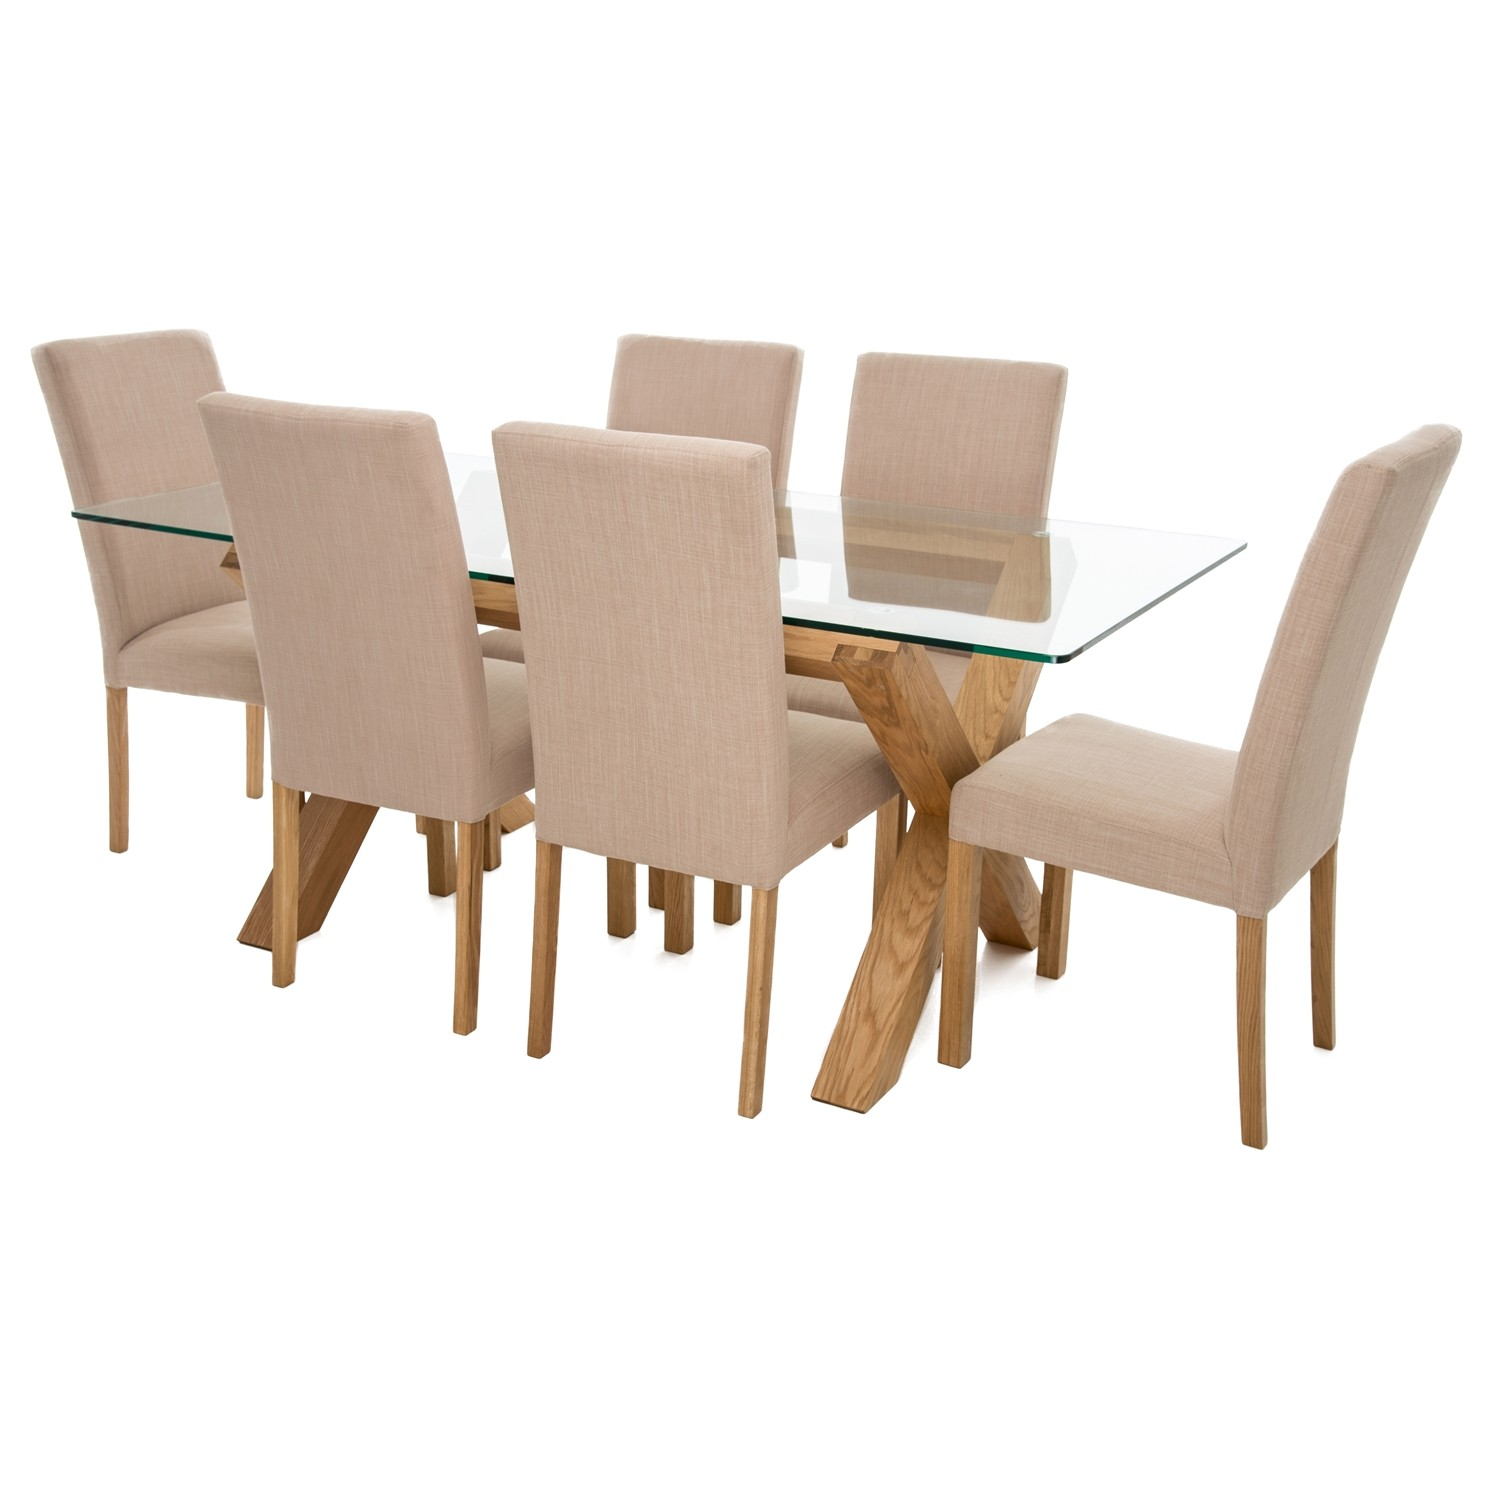 6 Dining Room Chairs Dining Table And Chairs How Perfect Your Dining Room Can